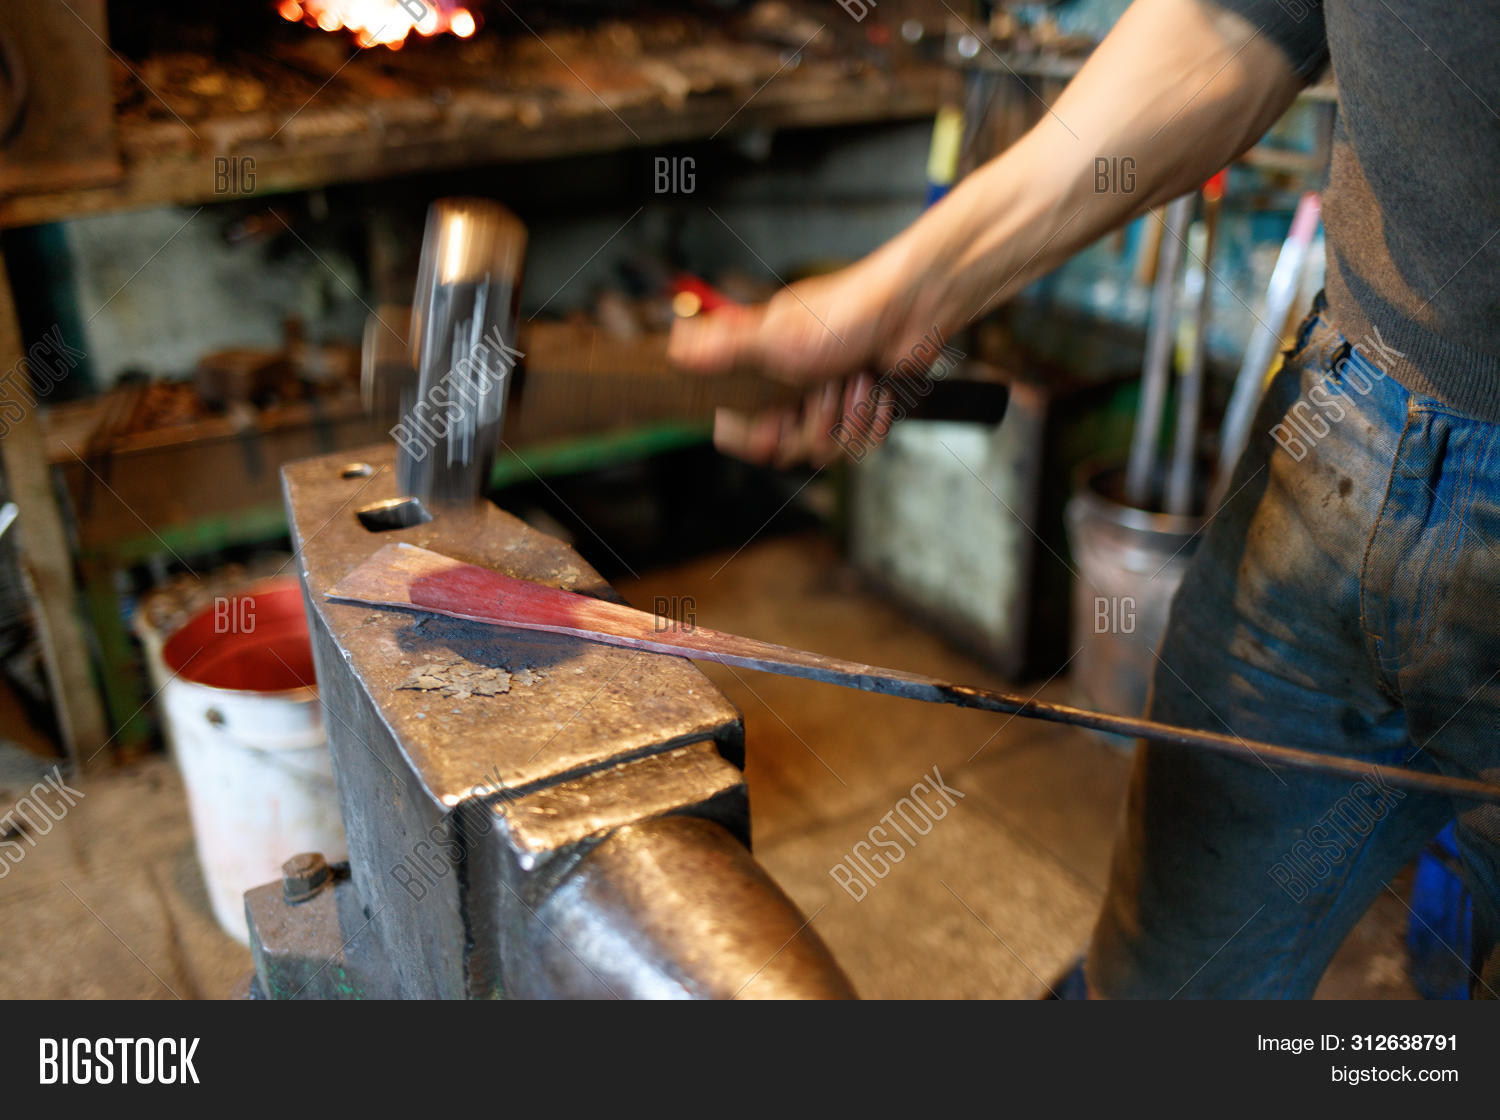 Unrecognizable Blacksmith Forging Red-hot Metal With Hammer. Blacksmithing Concept